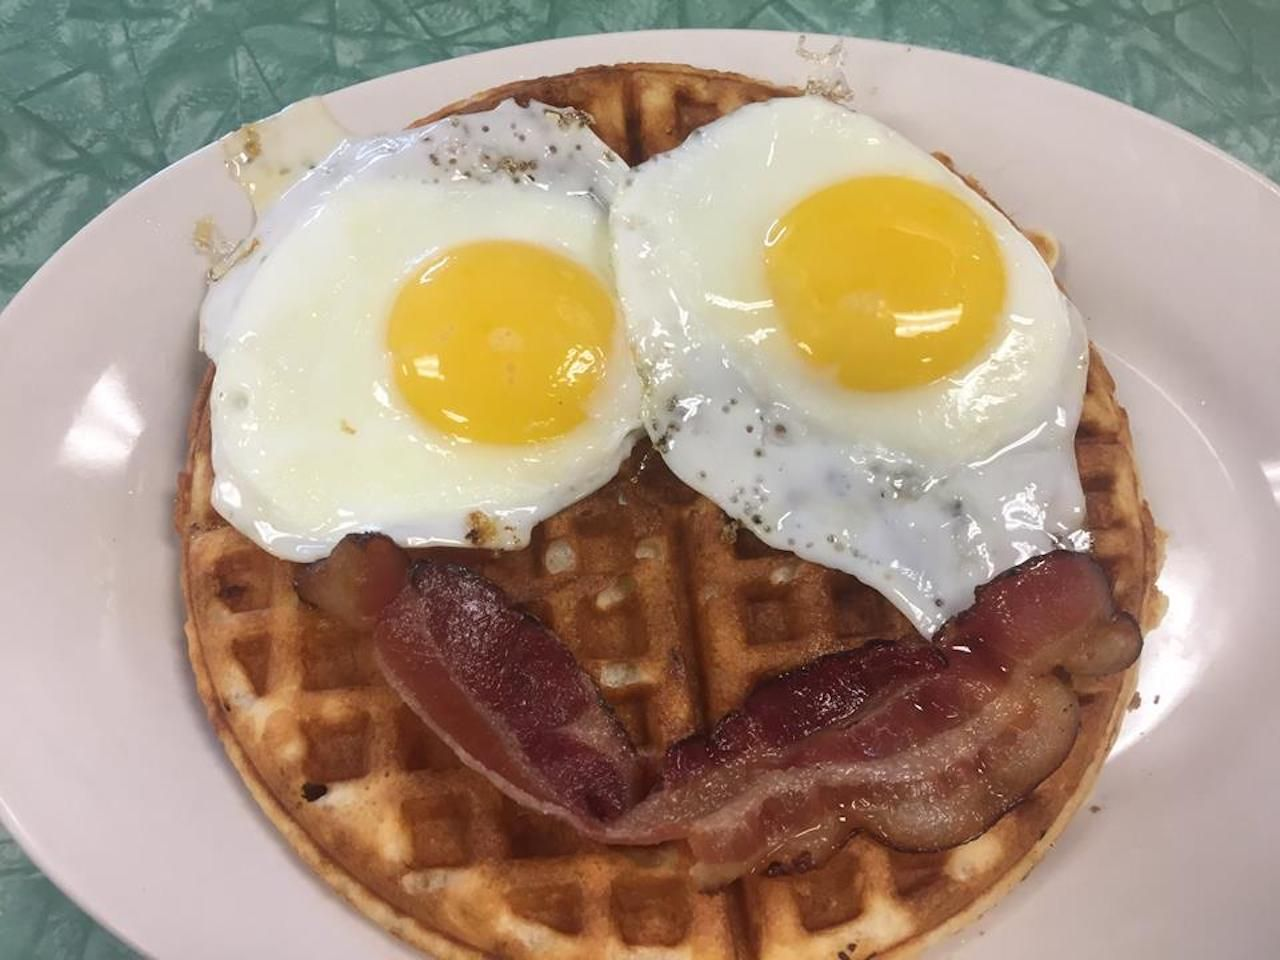 Tastee Diner overeasy eggs and a strip of bacon arranged on top of a waffle like a smiley face, best breakfast in asheville